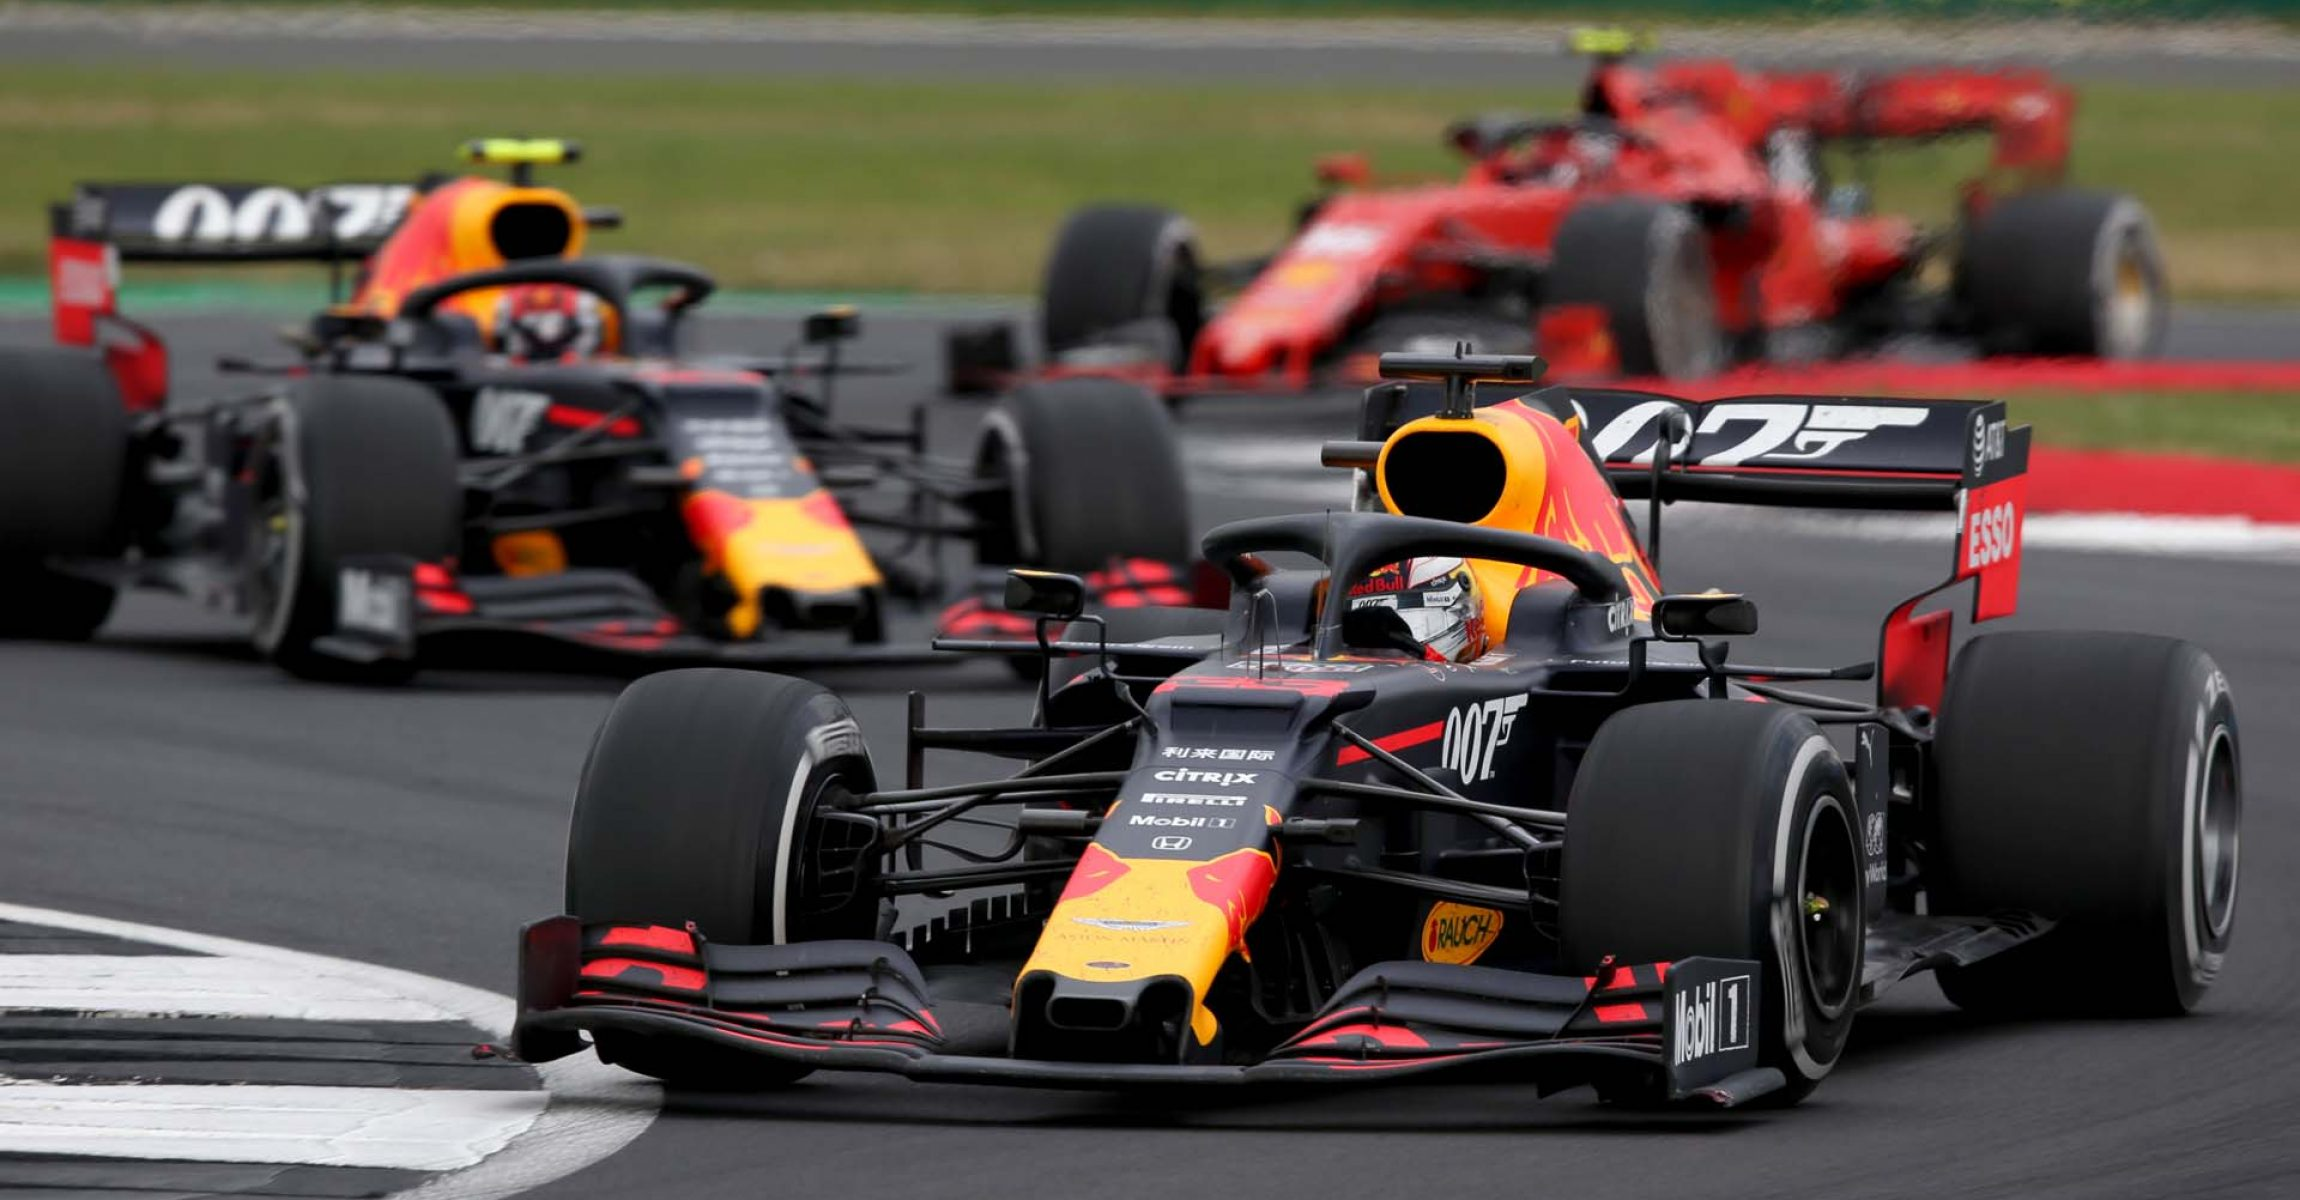 NORTHAMPTON, ENGLAND - JULY 14: Max Verstappen of the Netherlands driving the (33) Aston Martin Red Bull Racing RB15 leads Pierre Gasly of France driving the (10) Aston Martin Red Bull Racing RB15 during the F1 Grand Prix of Great Britain at Silverstone on July 14, 2019 in Northampton, England. (Photo by Charles Coates/Getty Images) // Getty Images / Red Bull Content Pool // AP-1ZXUVU2KN2111 // Usage for editorial use only // Please go to www.redbullcontentpool.com for further information. //